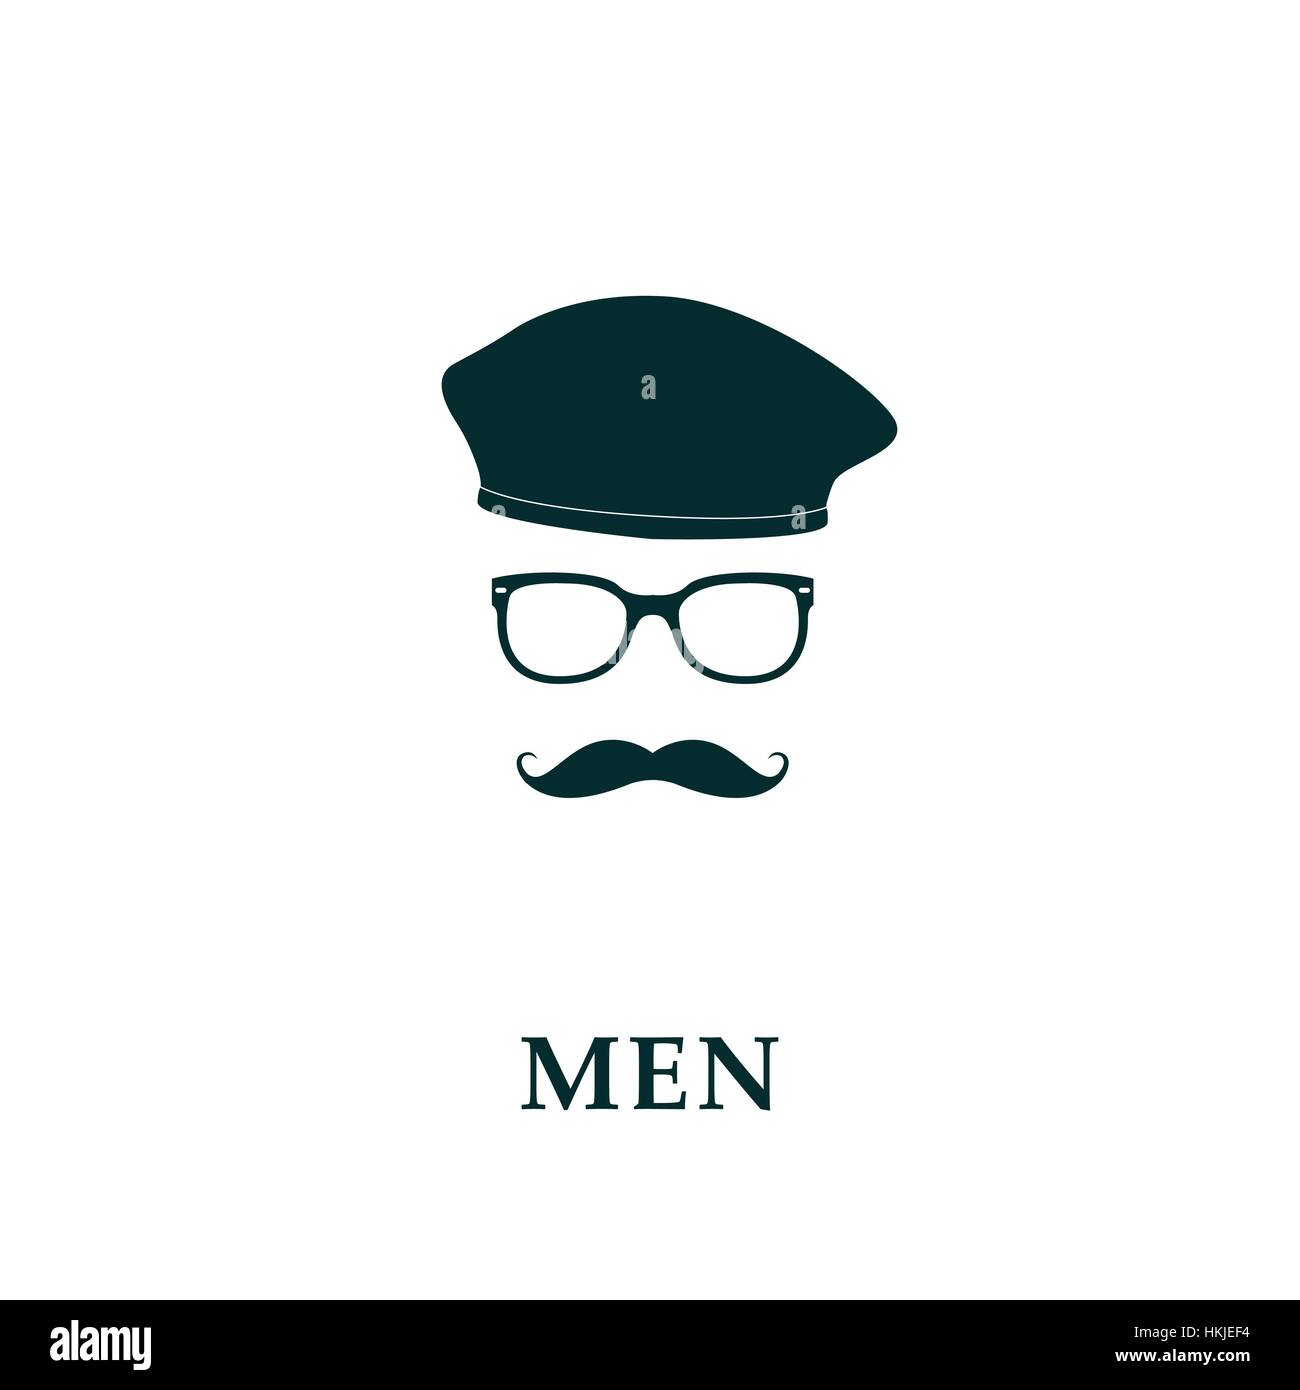 Men French Beret And Mustache Icon In Flat Style Vector Stock Art Illustration Image 132557576